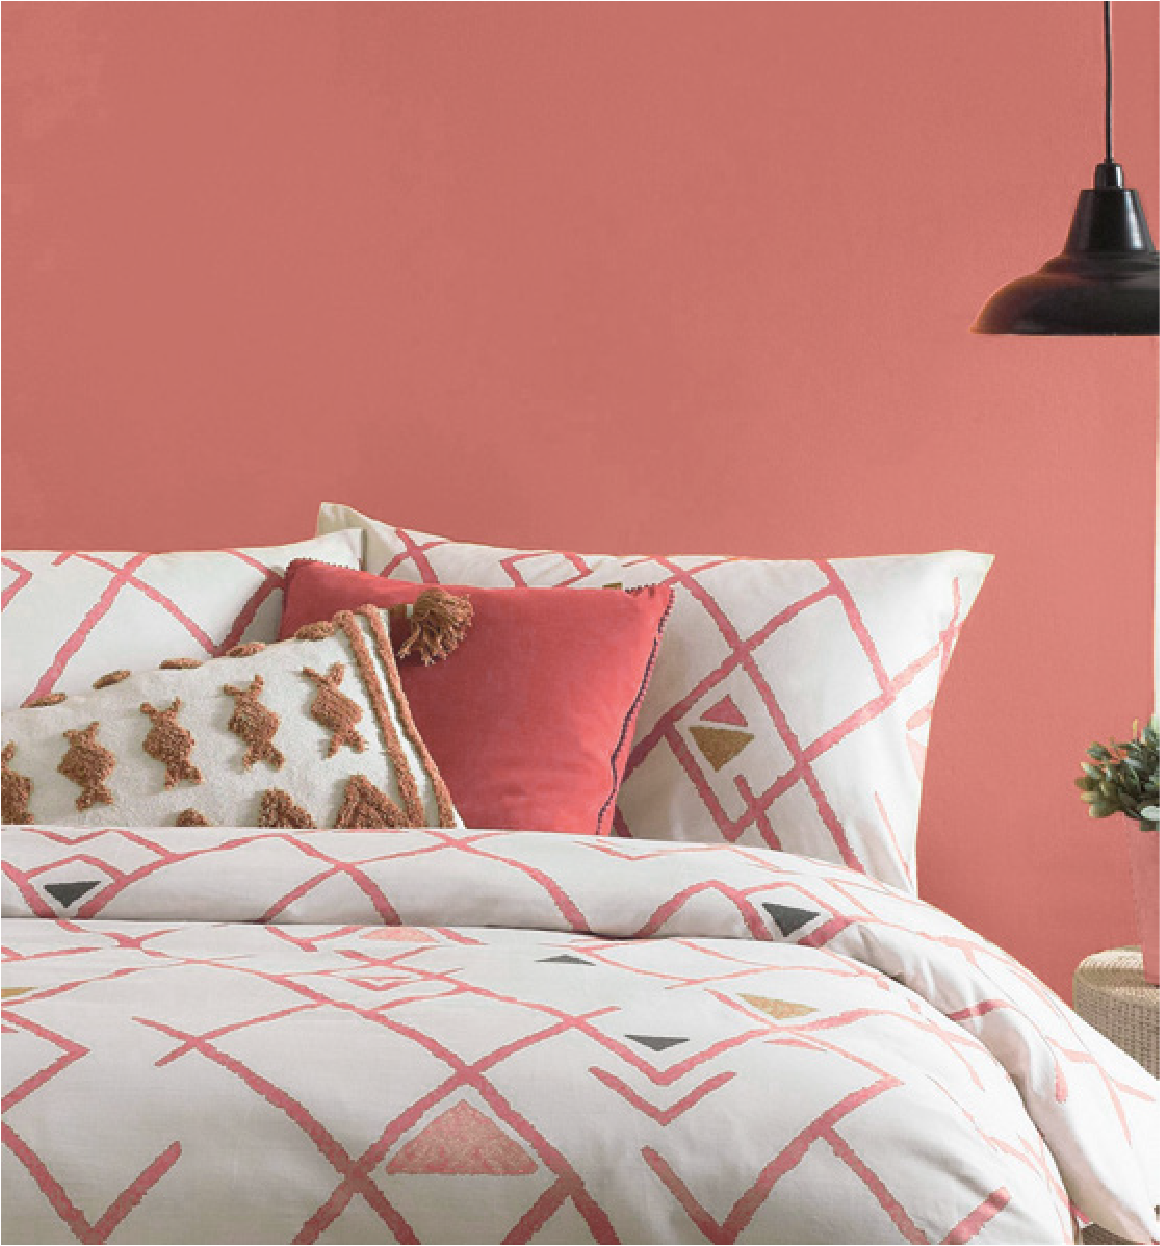 Marble Pink 0057 in a bedroom or as an accent colour in Inspiring Colour 2021 Magazine by Harris Paints.